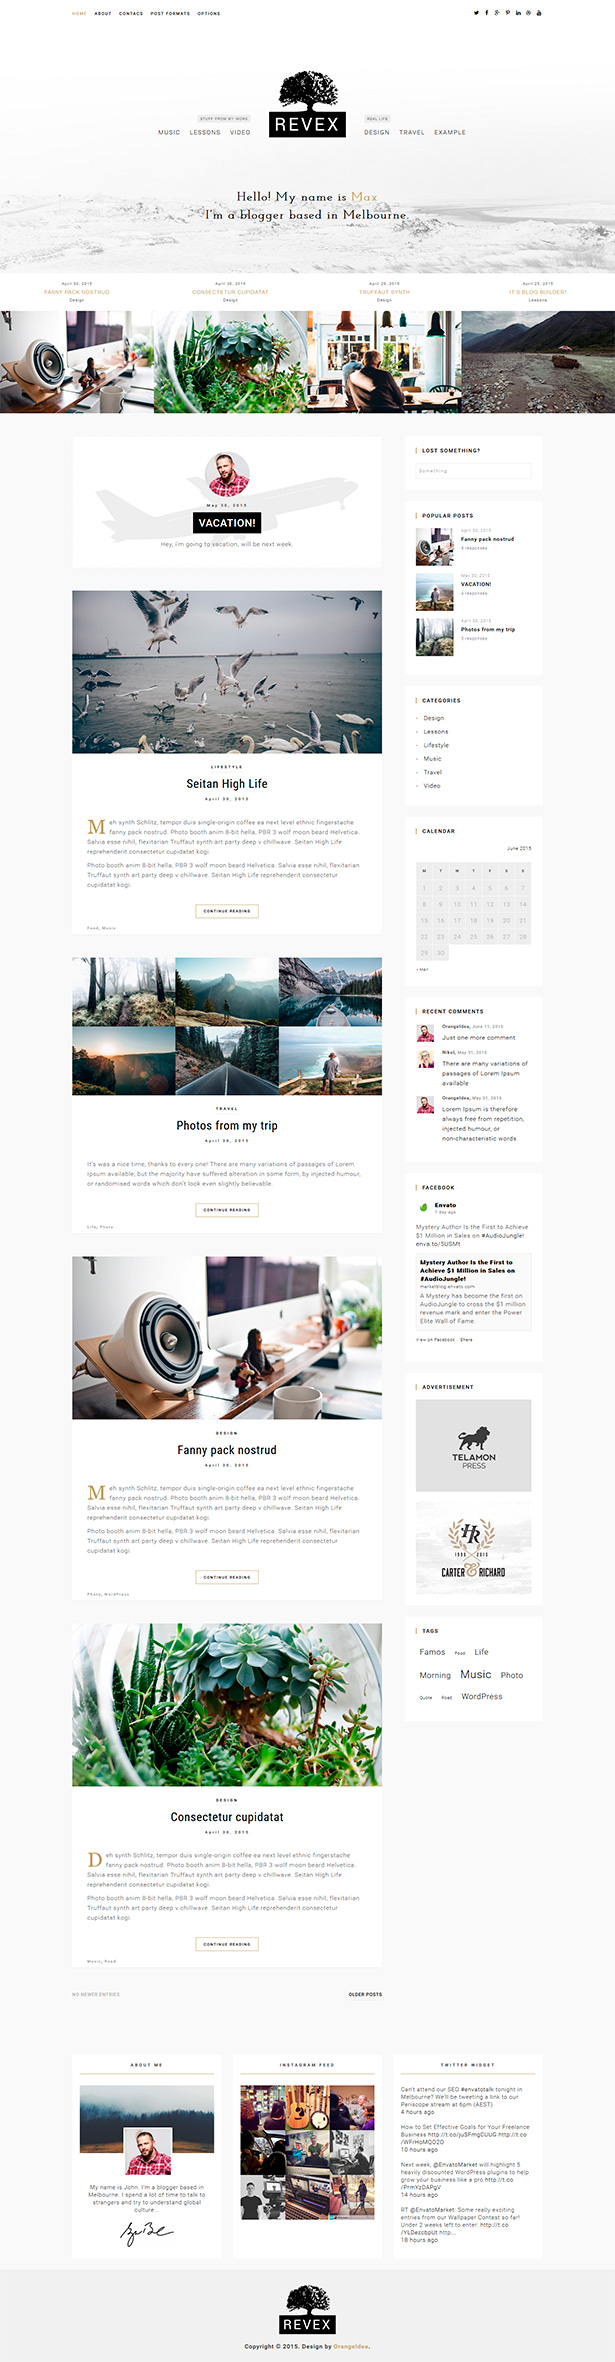 REVEX - Personal Blog HTML Template - 2